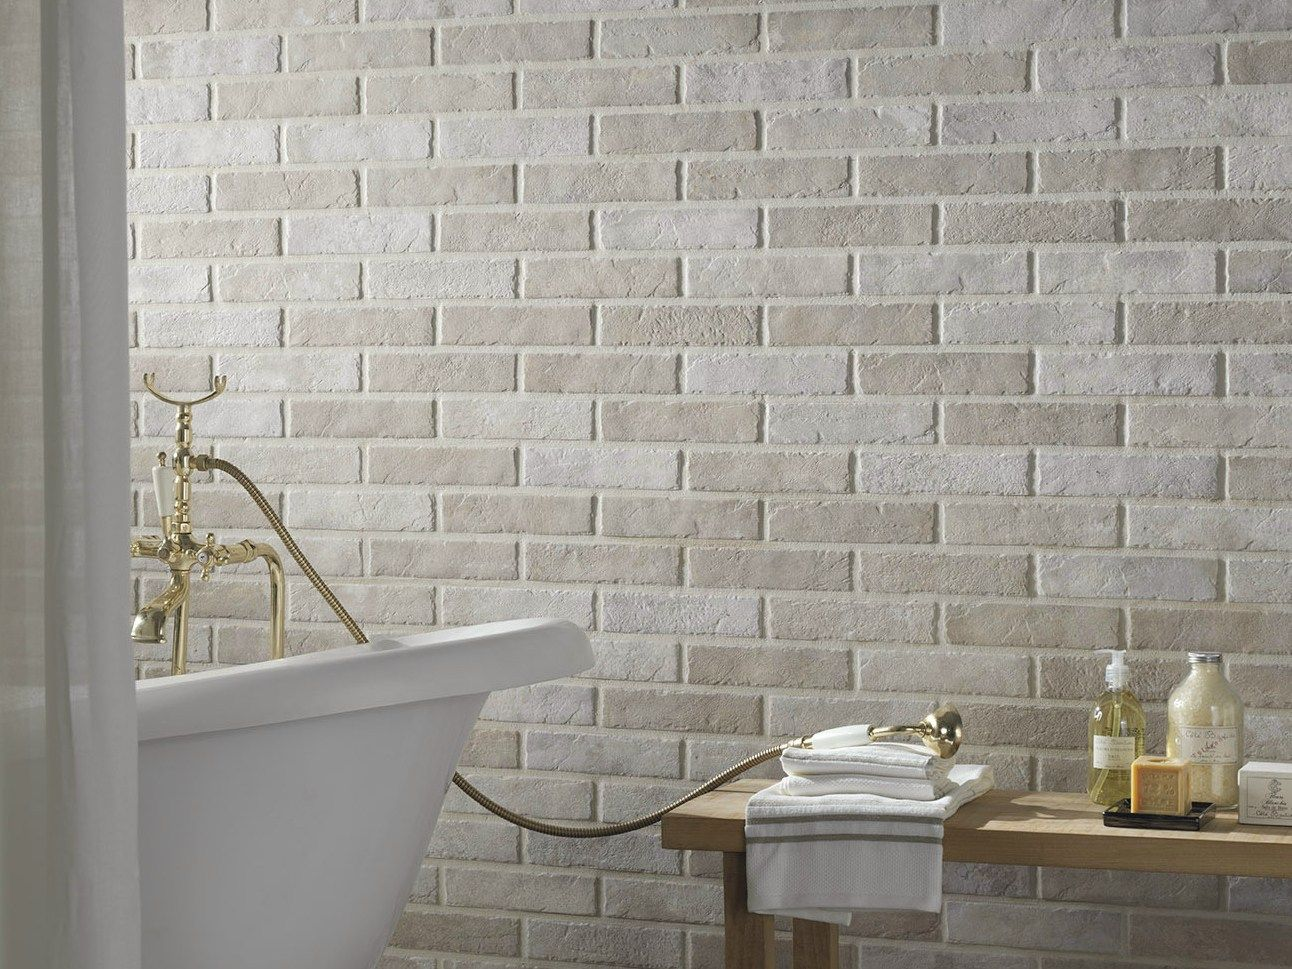 Porcelain stoneware wall tiles with brick effect tribeca in sand tribeca brick look italian wall tile ceramic rondine bv tile and stone dailygadgetfo Gallery